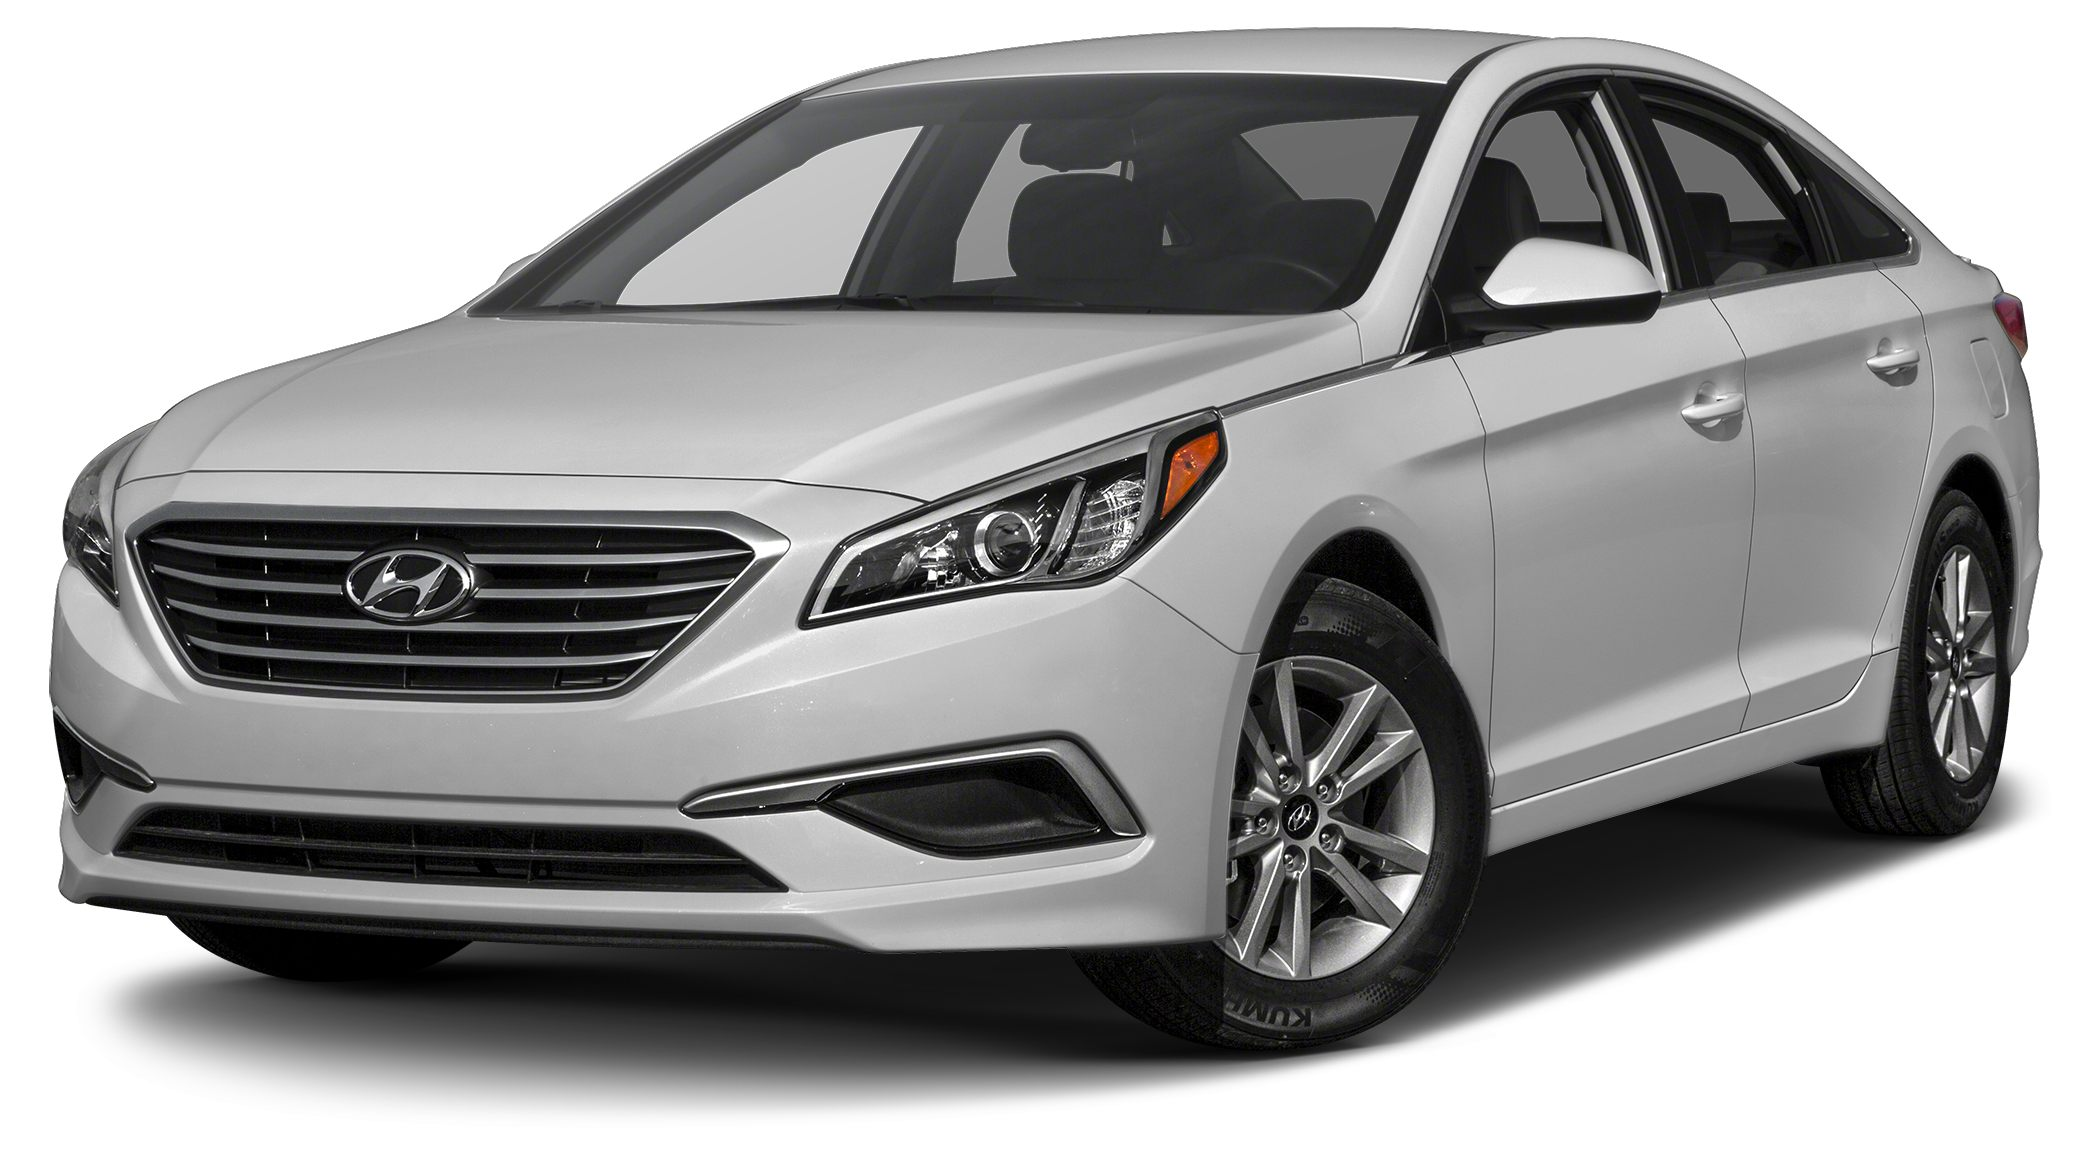 2016 Hyundai Sonata SE 2016 Hyundai Sonata SE in Silver Bluetooth for Phone and Audio Streaming